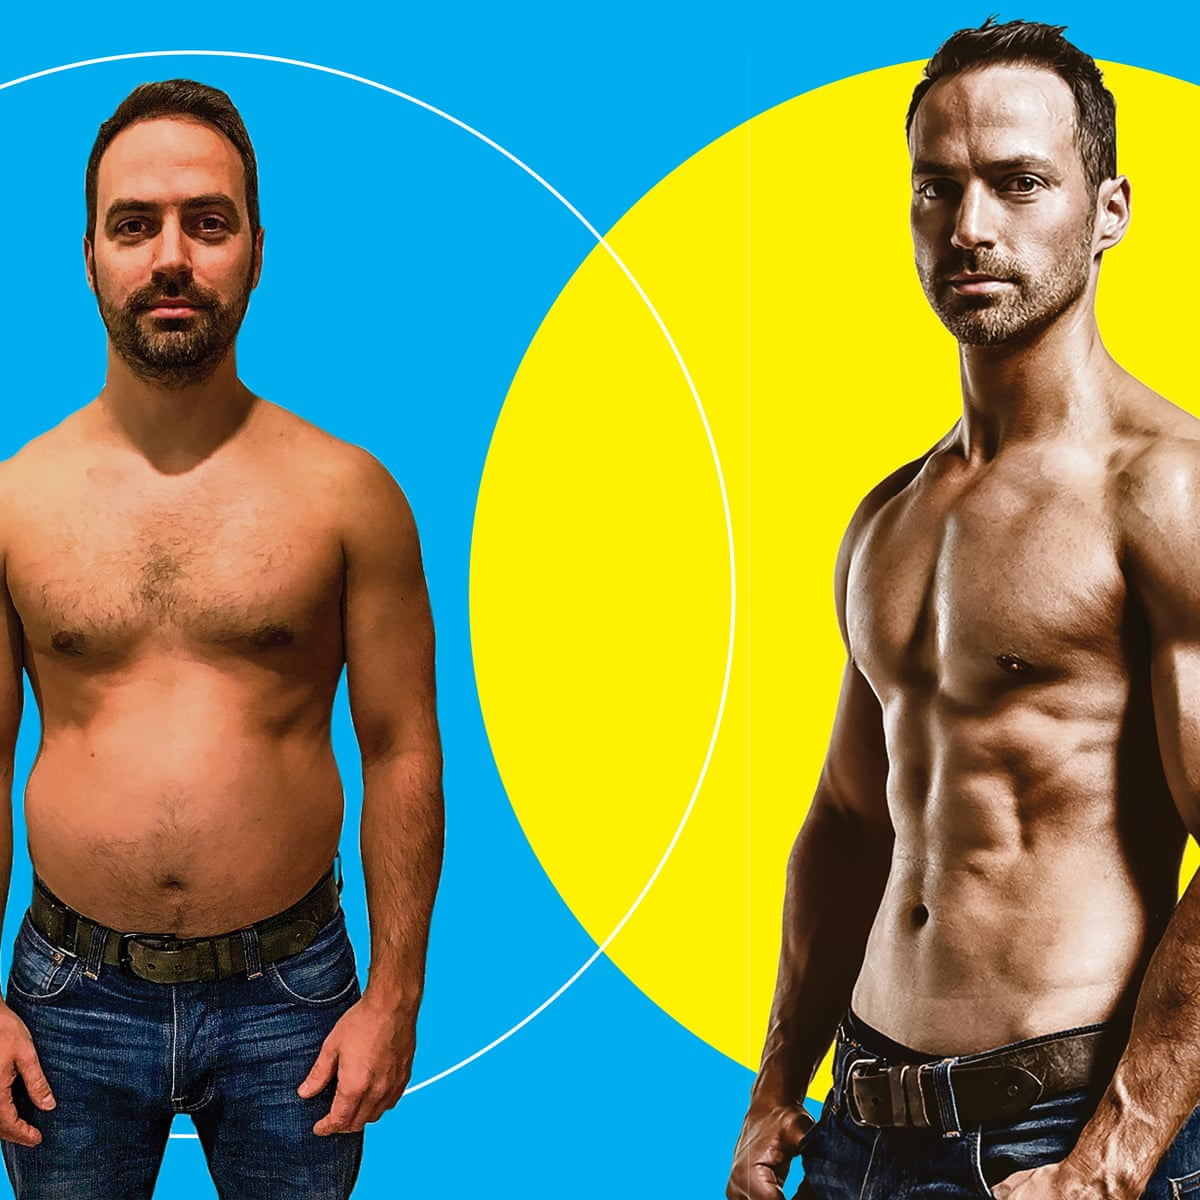 Body perfect guy Ideal Male